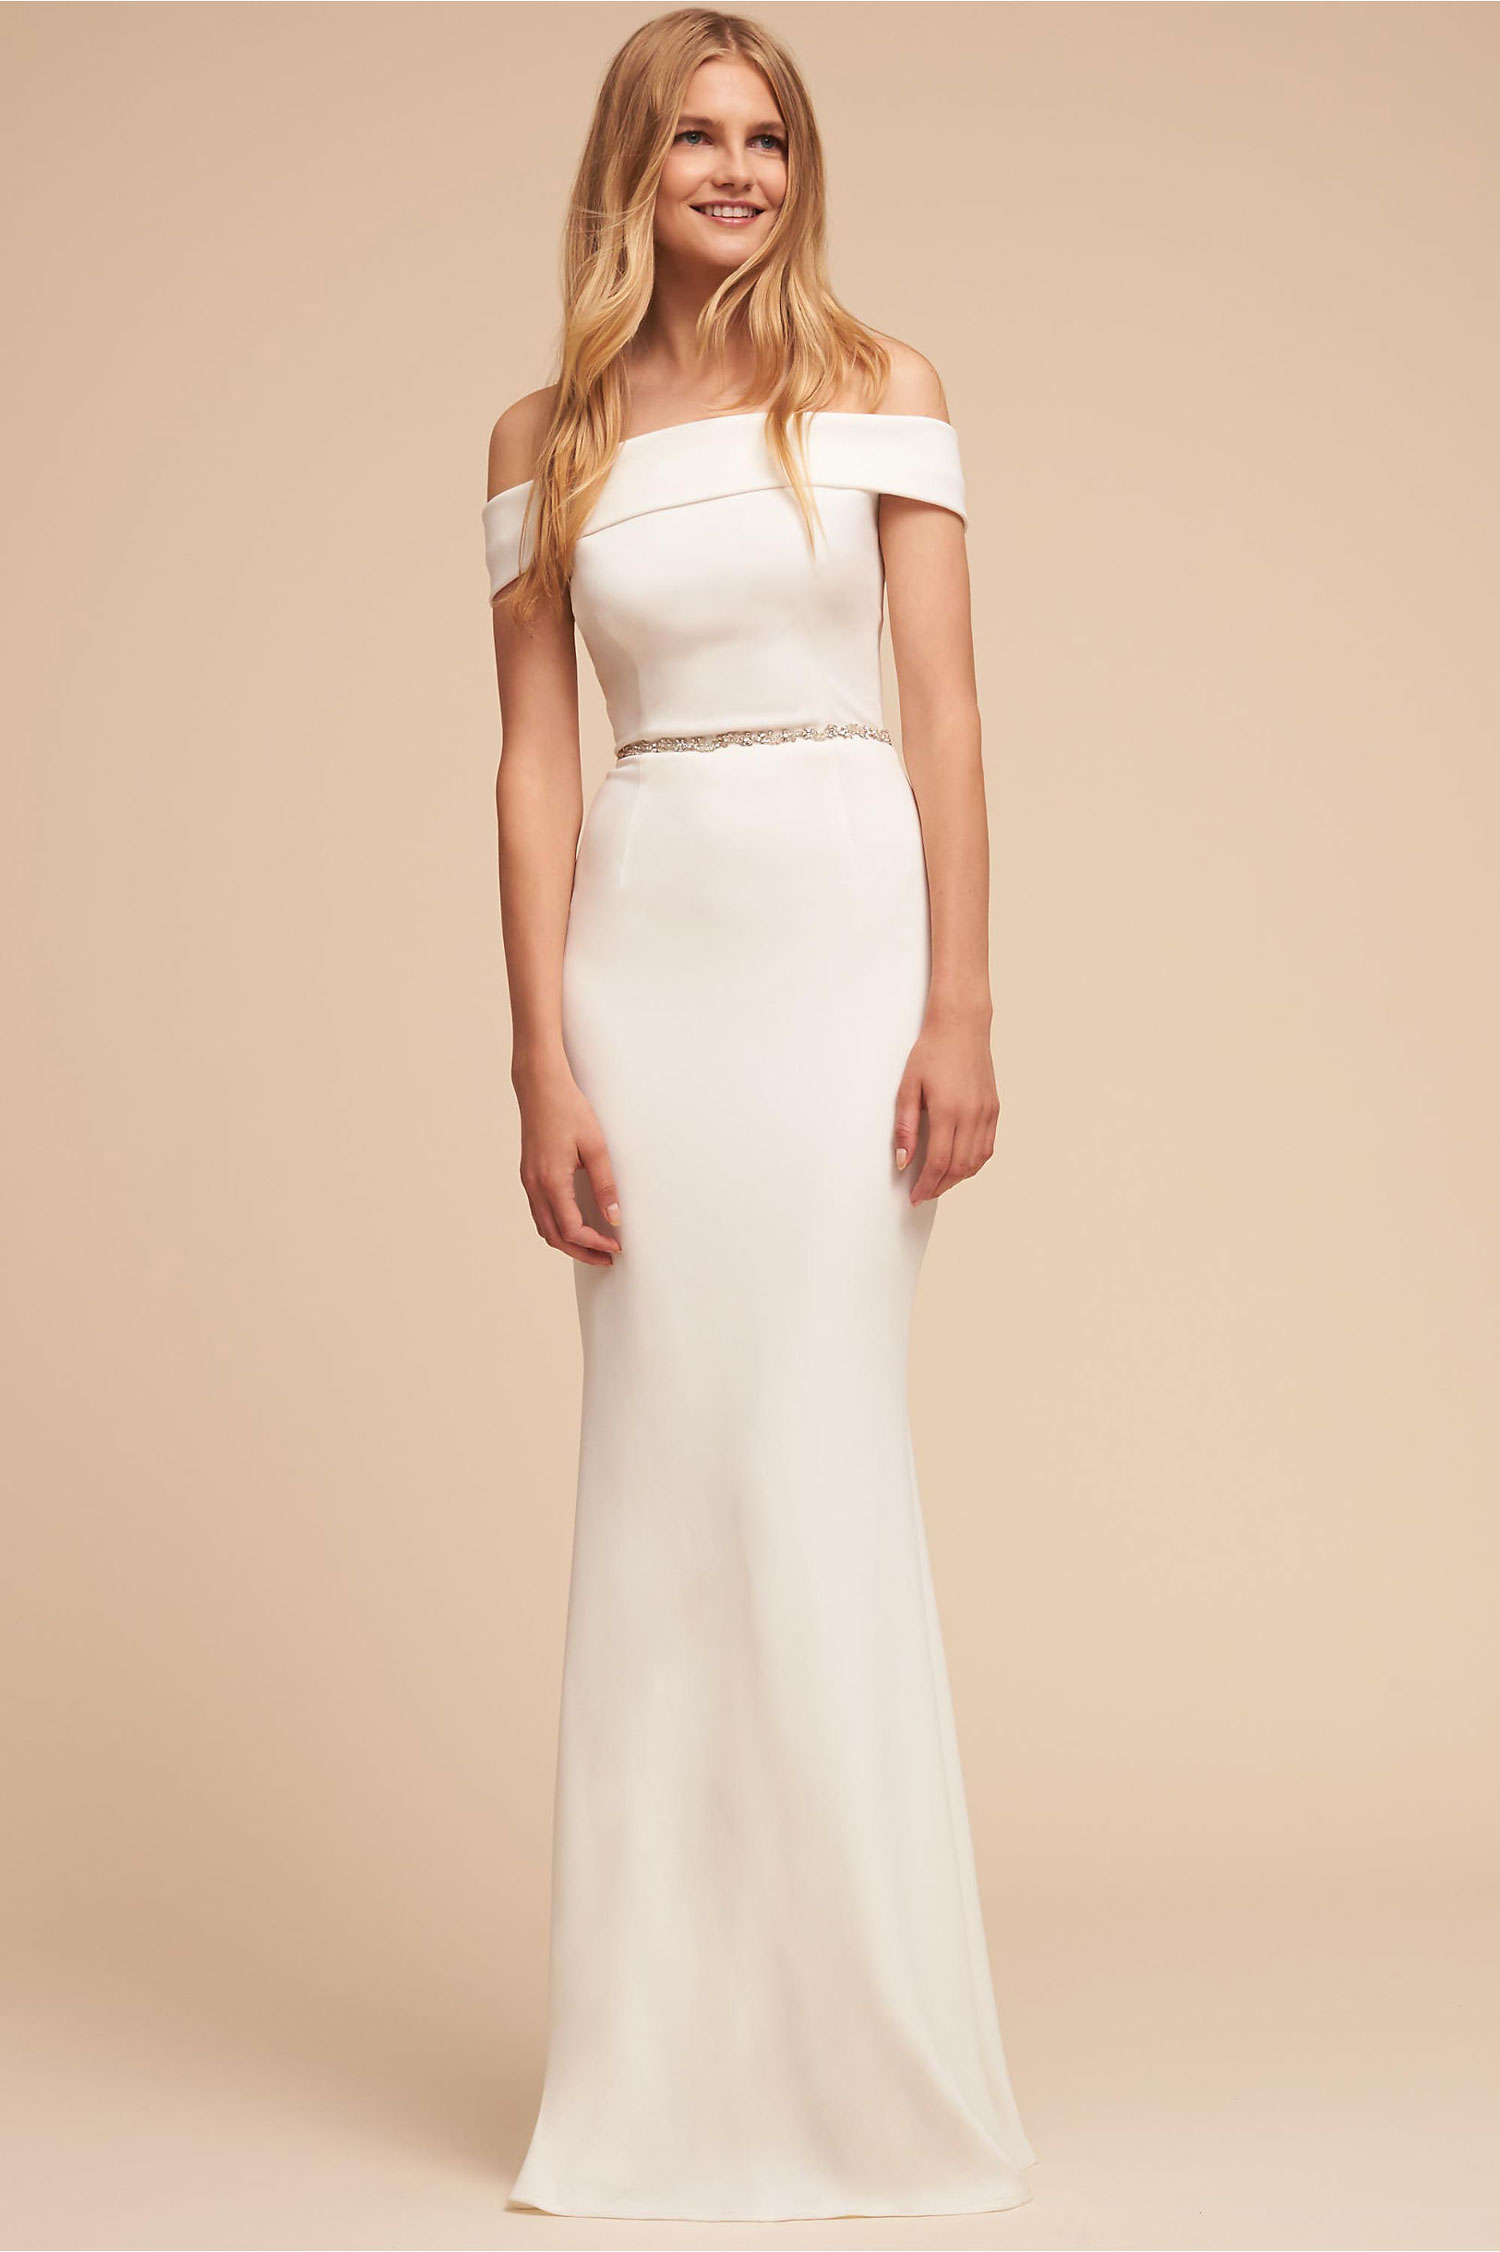 BHLDN Legacy dress katie may wedding dress rehearsal dinner ideas